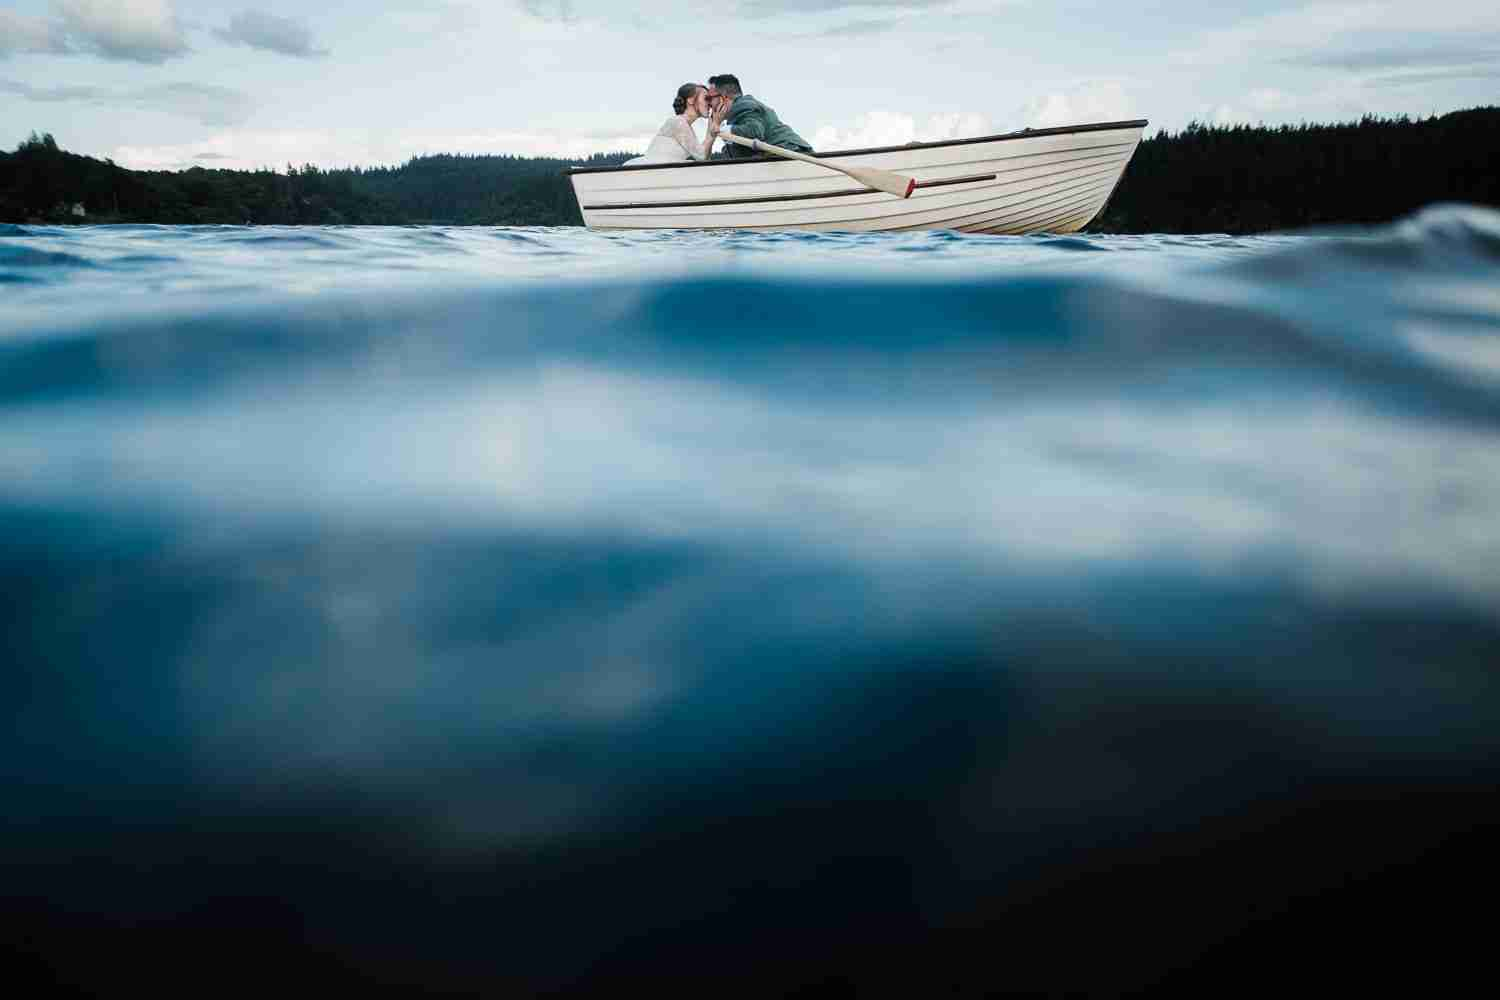 A wedding portrait from in the water at Loch Ard